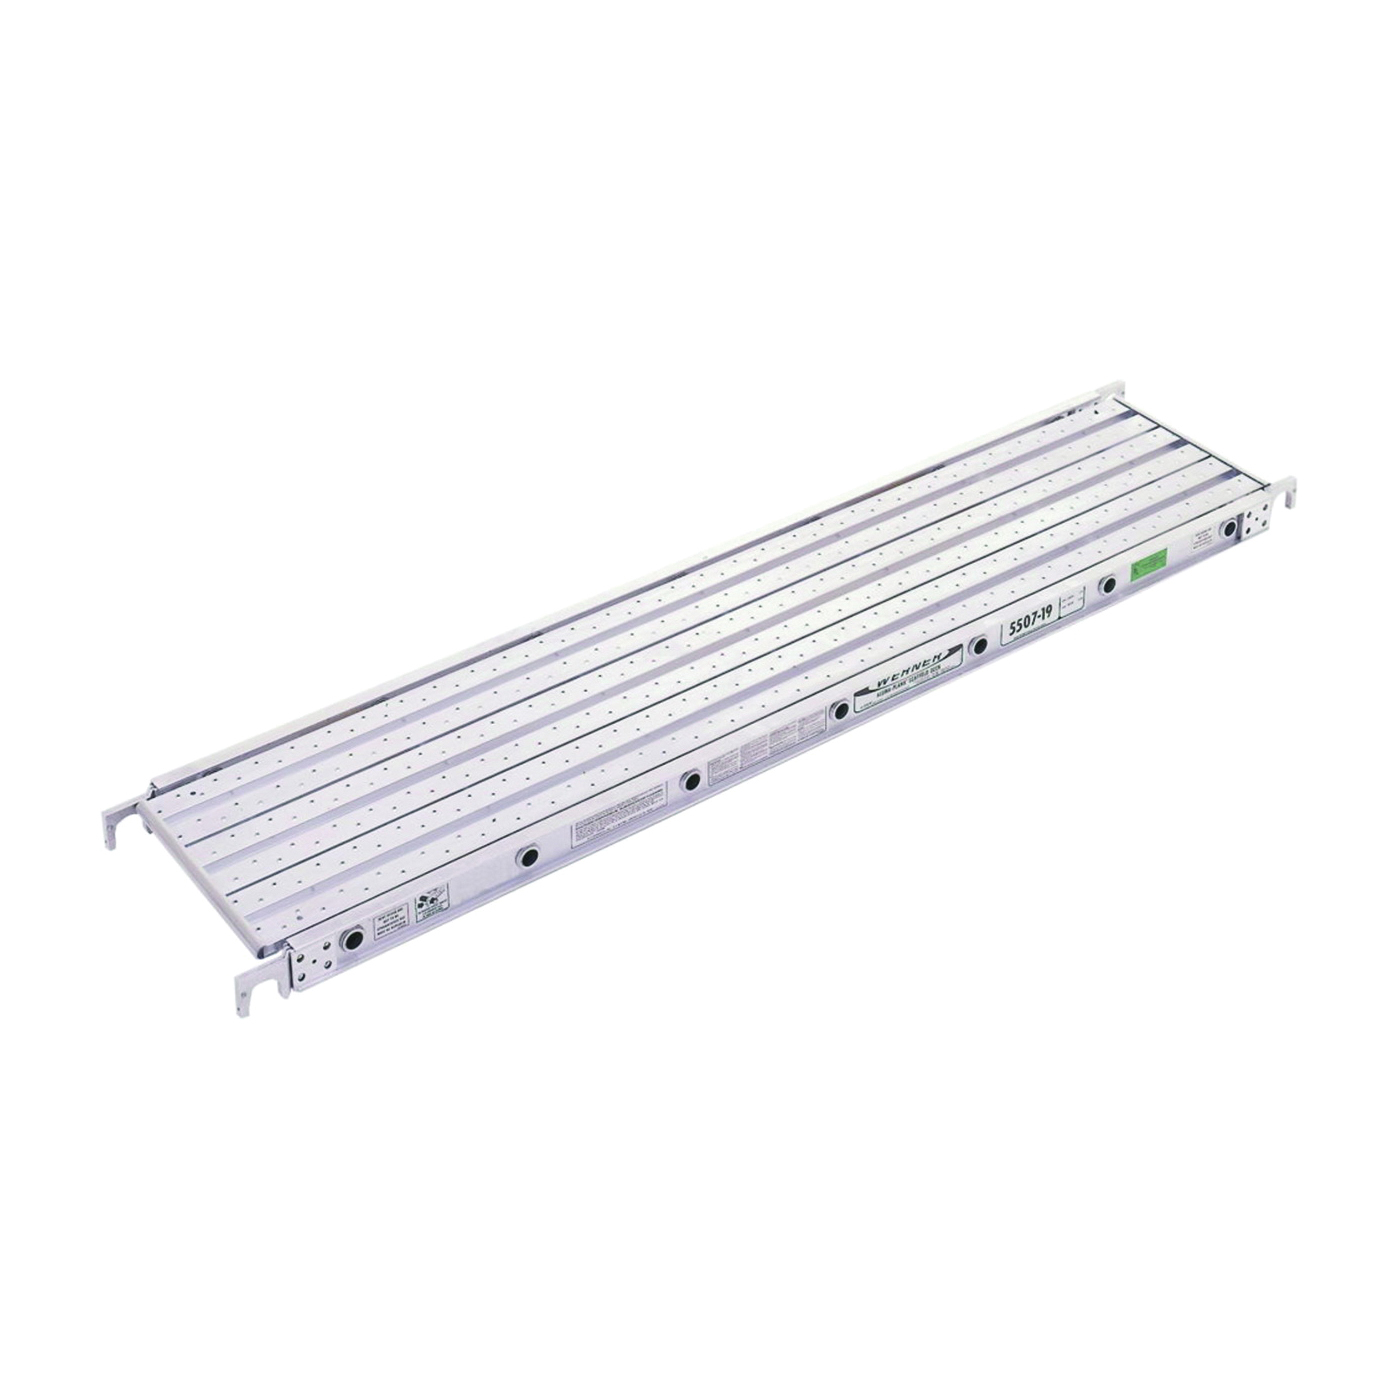 Picture of WERNER 5507-19 Aluma-Plank, 7 ft L, 19-1/16 in W, Aluminum